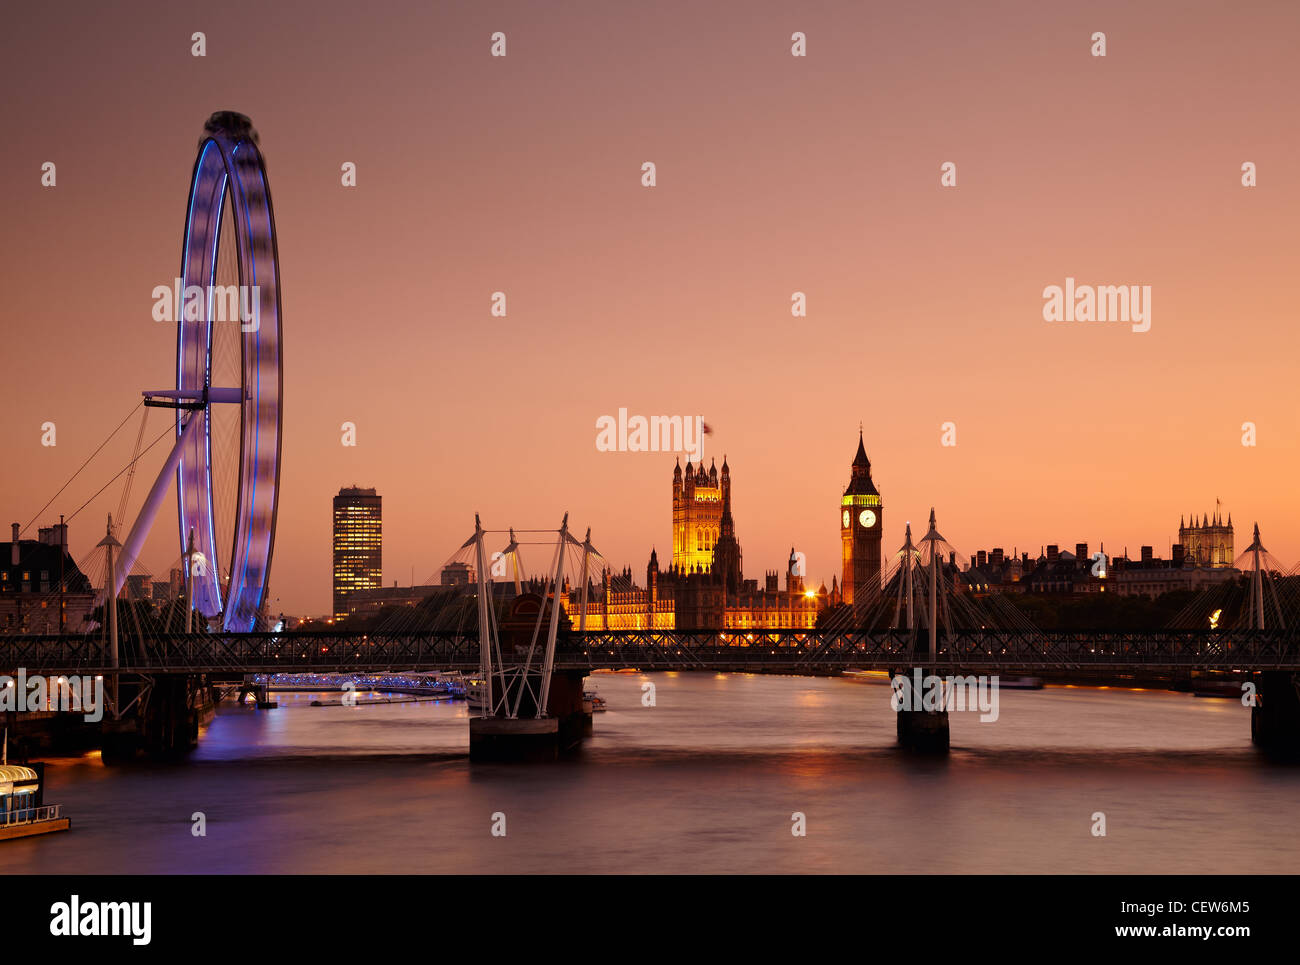 The view along the River Thames of the Millennium Wheel (London Eye), Houses of Parliament and Big Ben at sunset, - Stock Image